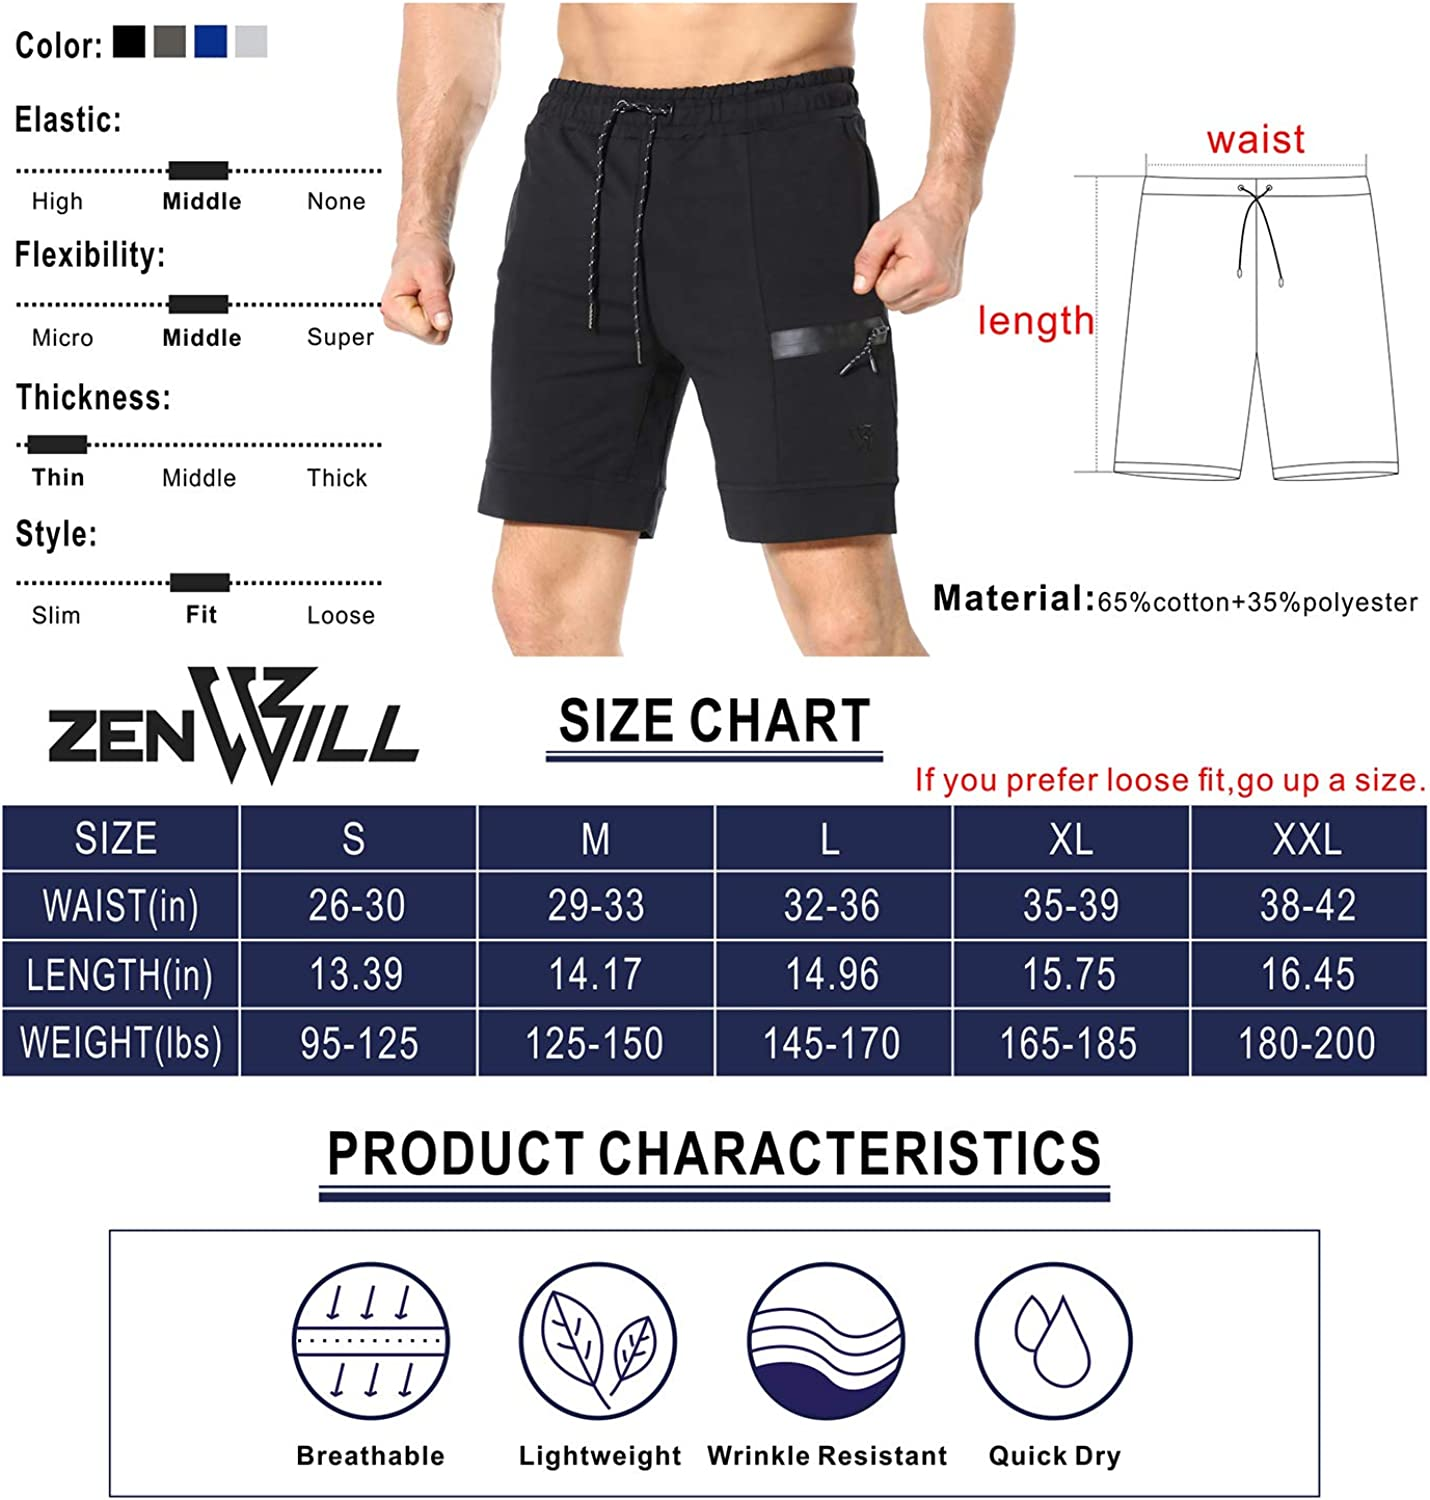 ZENWILL Mens Sidelock Workout Running Shorts Gym Bodybuilding Fitness Shorts with Pockets